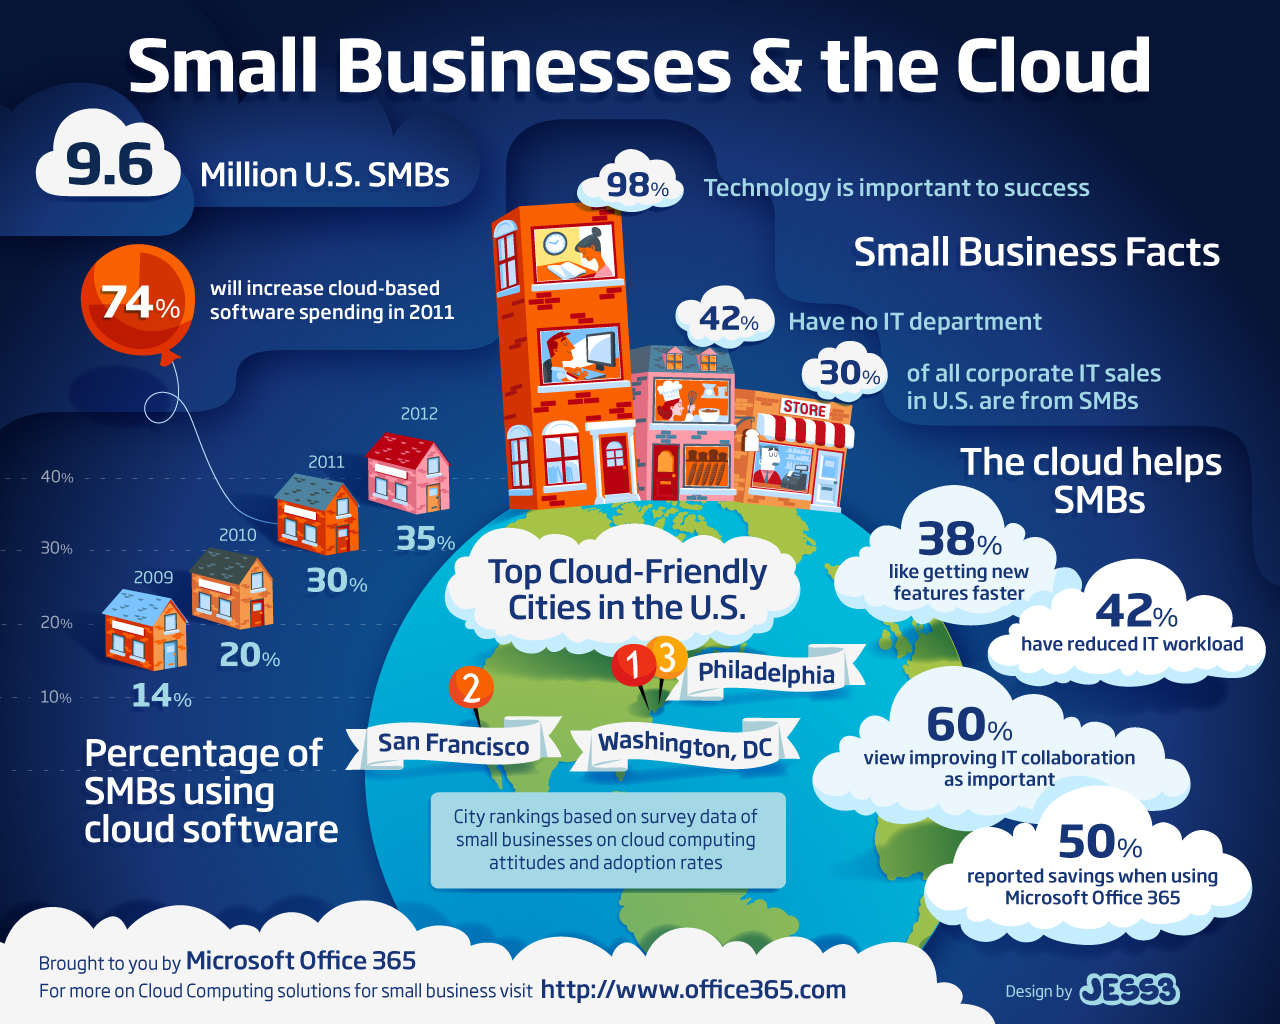 RMG-Small-Business-and-The-Cloud